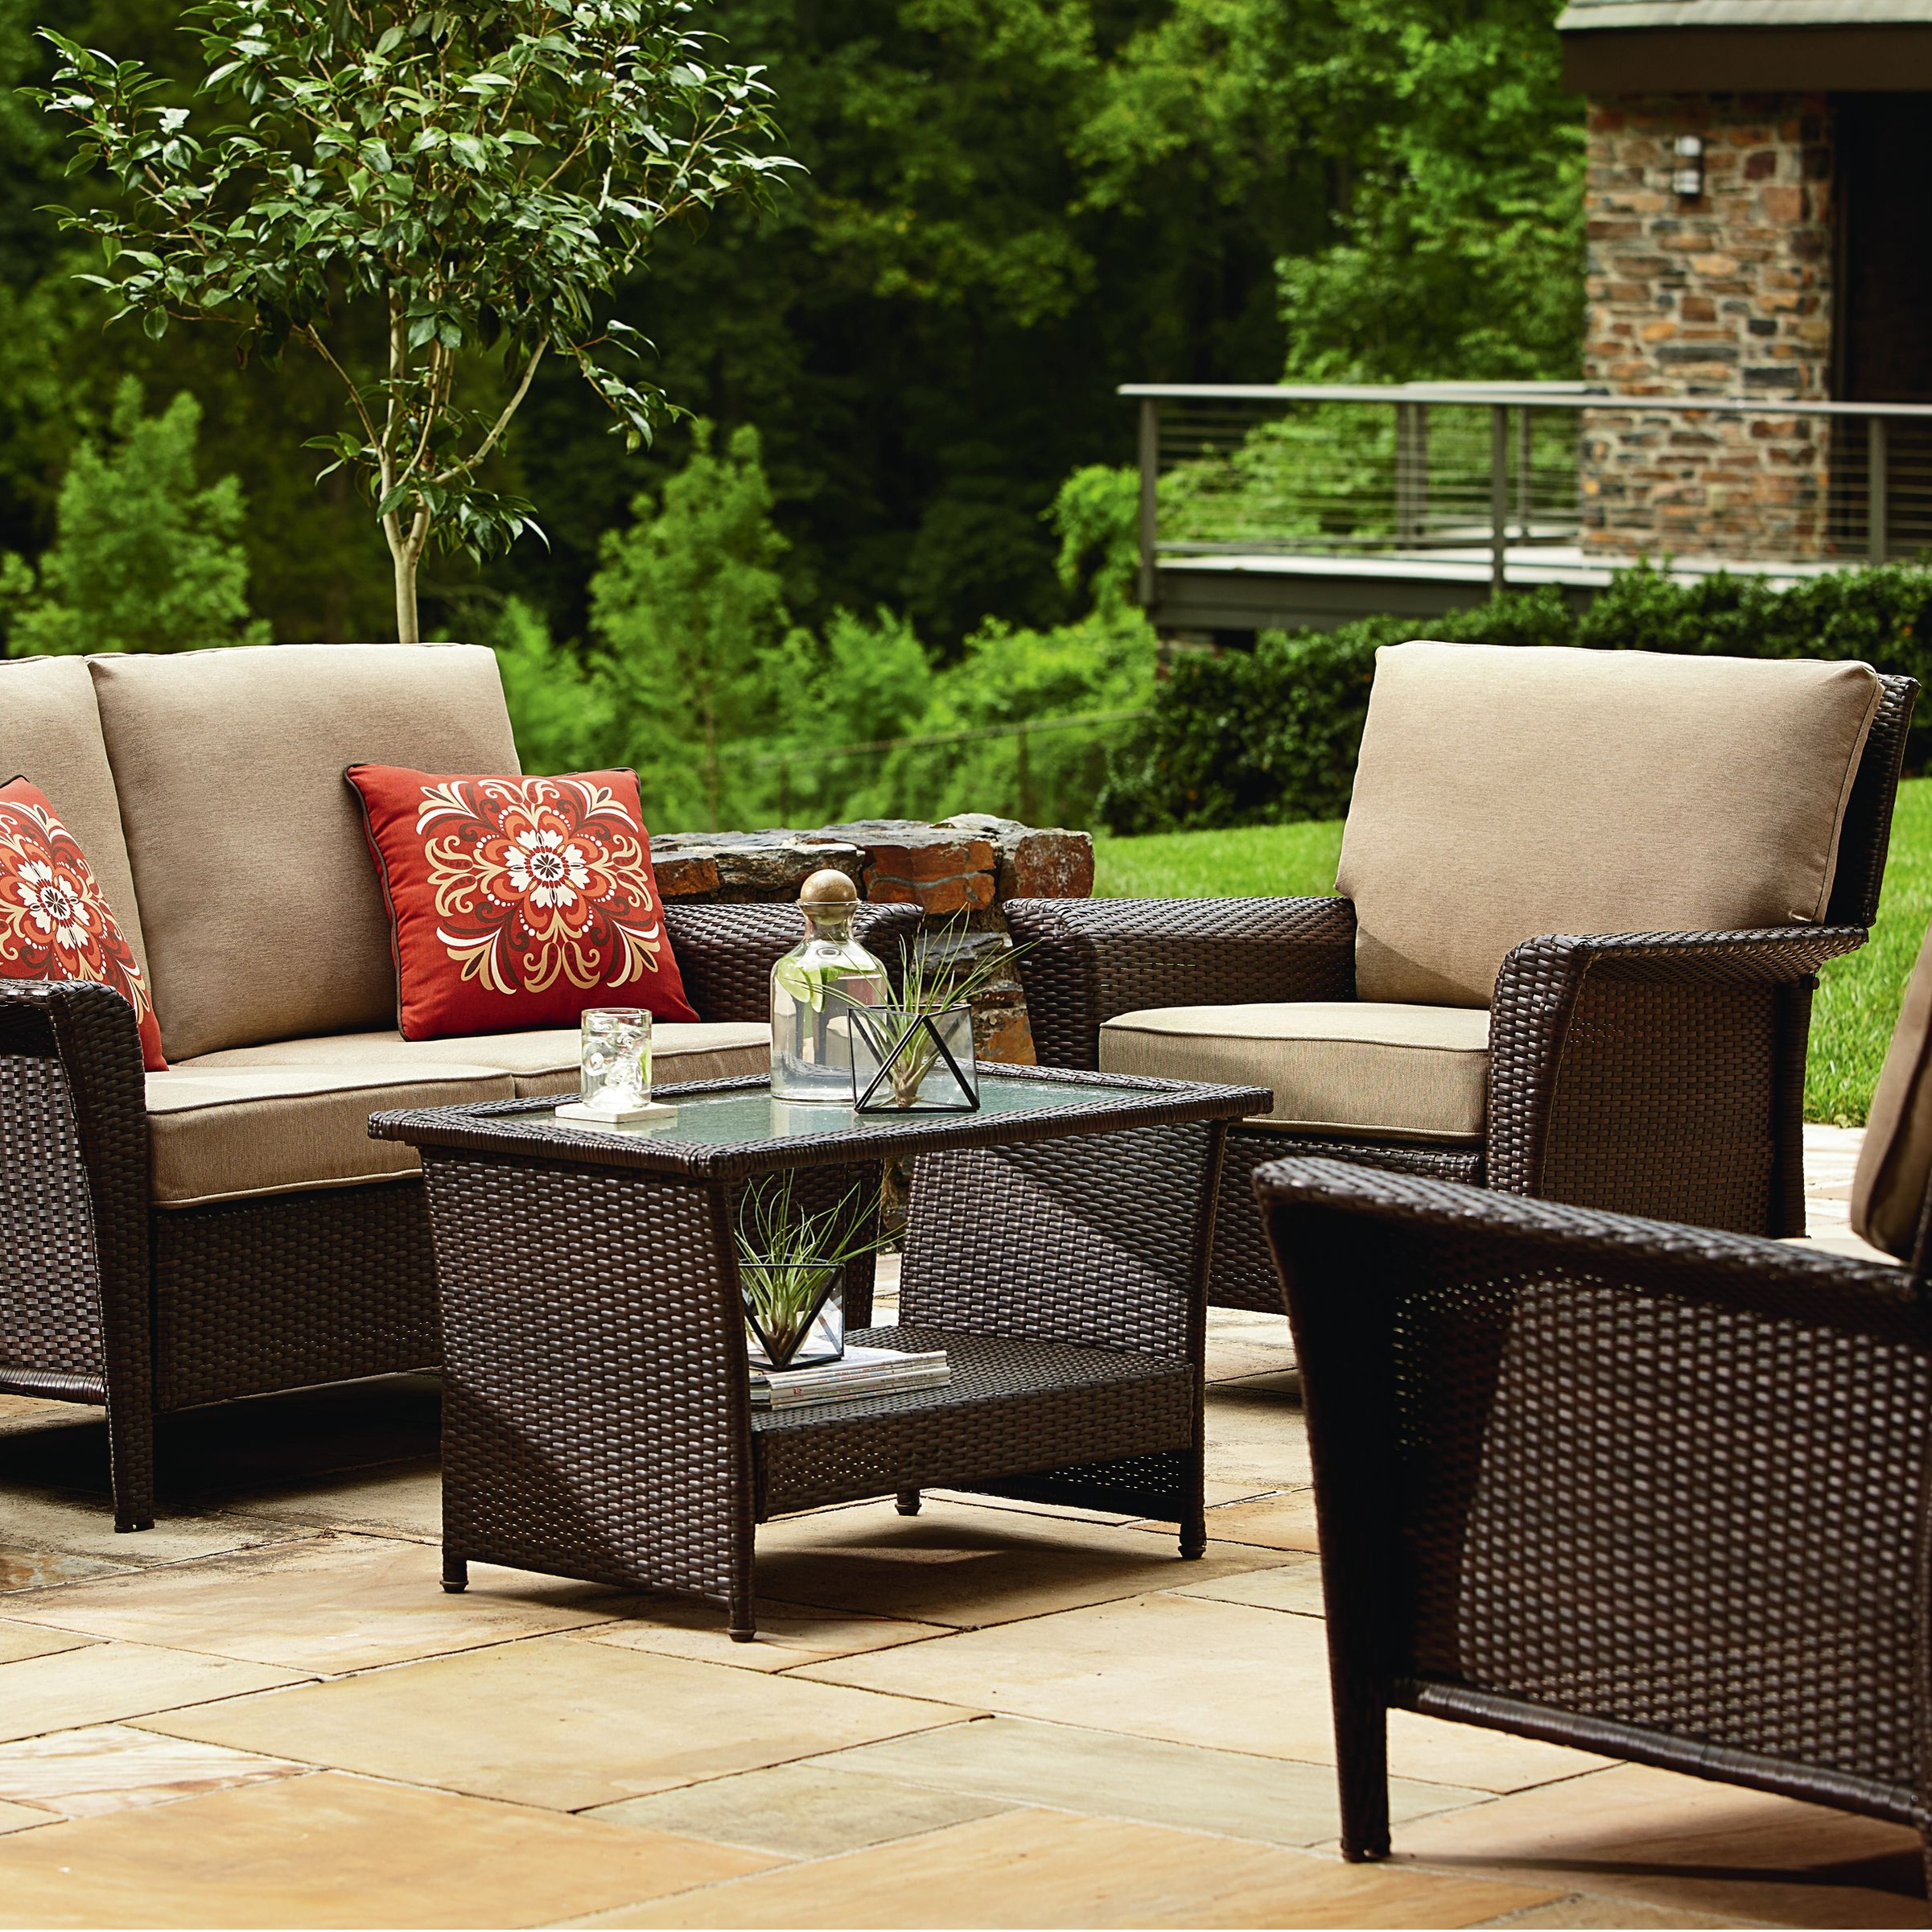 Patio Conversation Sets For Small Spaces Regarding 2018 Awesome Sears Patio Table View With Family Room Small Room Sears (View 12 of 15)